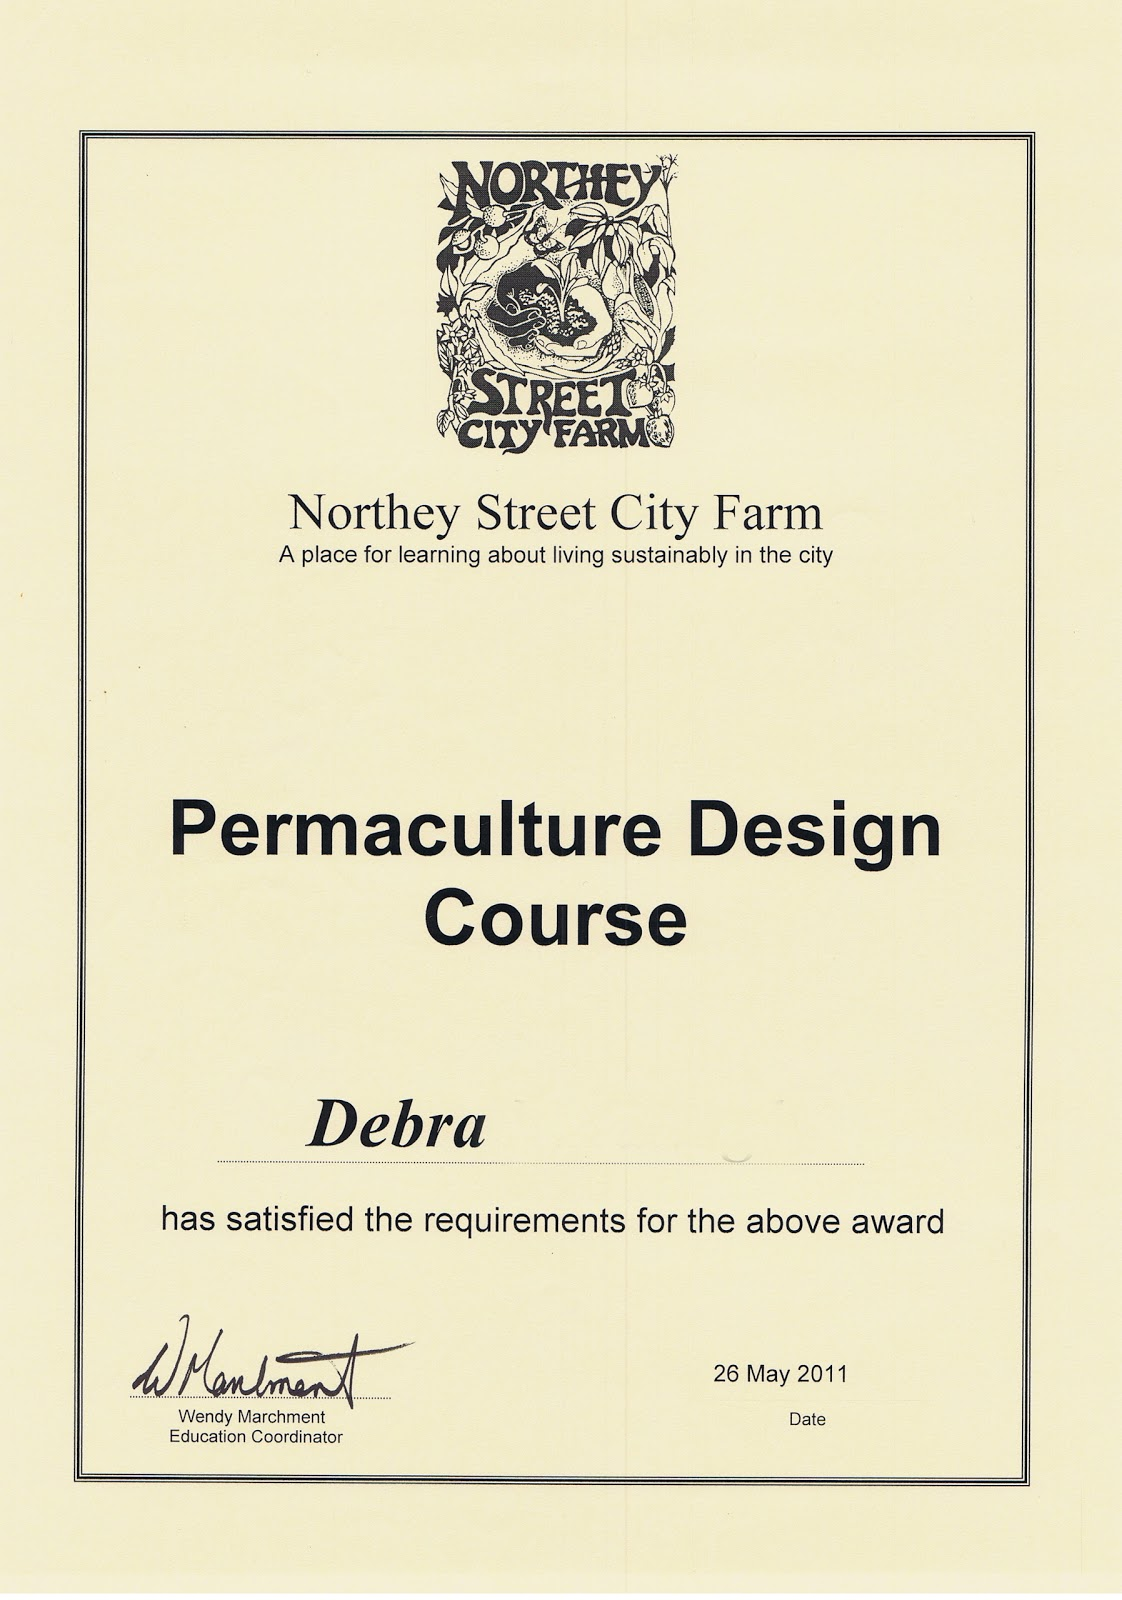 Deb\'s Daily Journal: Permaculture Design Certificate - Done!